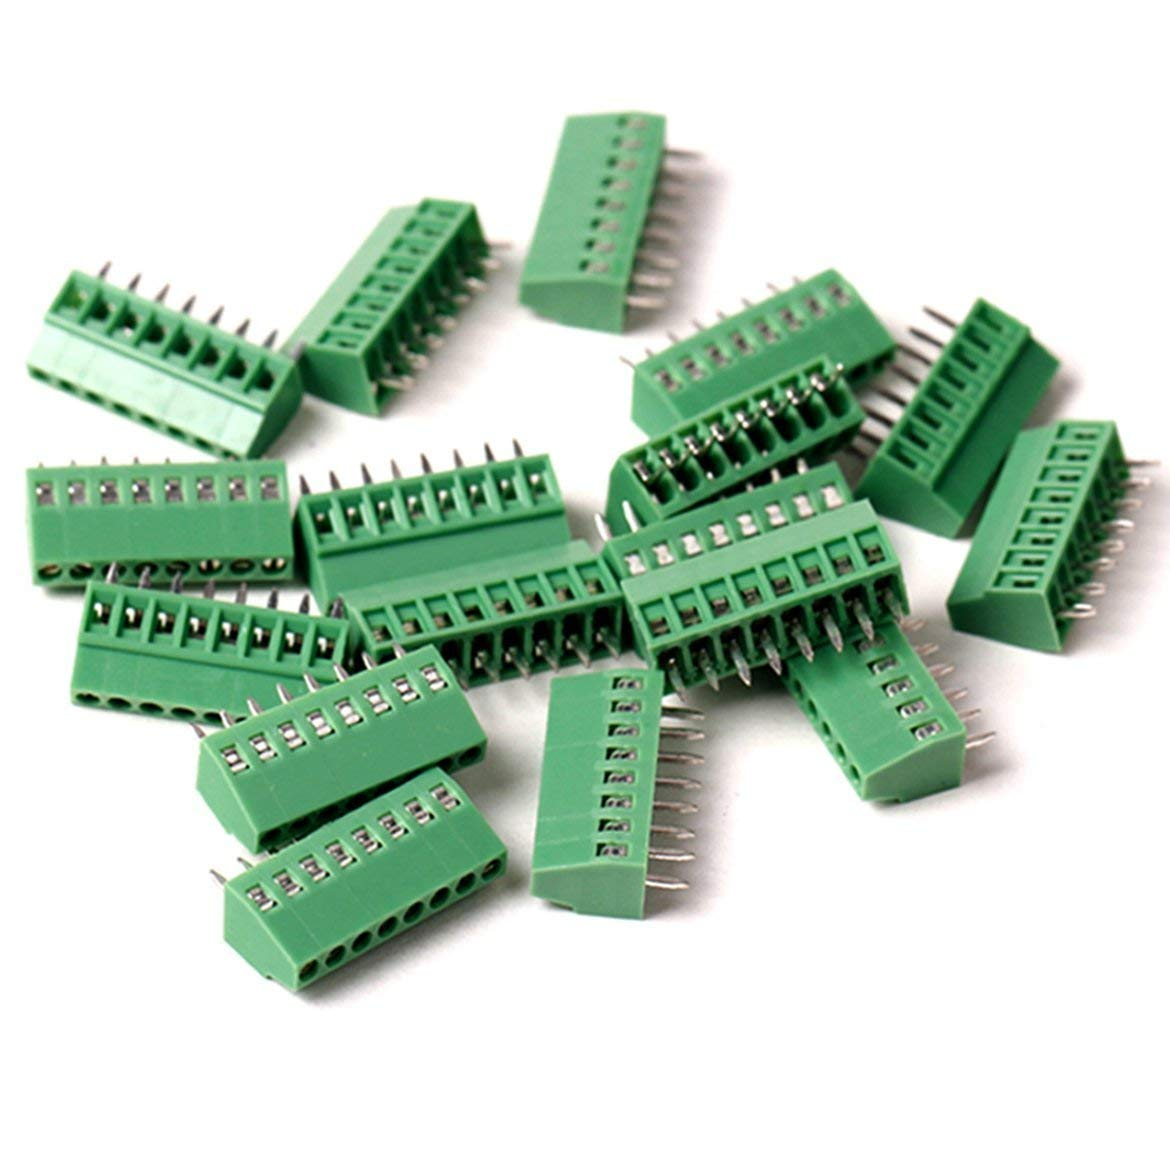 "20pcs/lot E-Simpo 2.54mm Pitch (0.1"") PCB Screw Terminal Block, 2.54mm Rated 150V6A CE UL,Copper Material Rohs. (2.54mm 7P)"